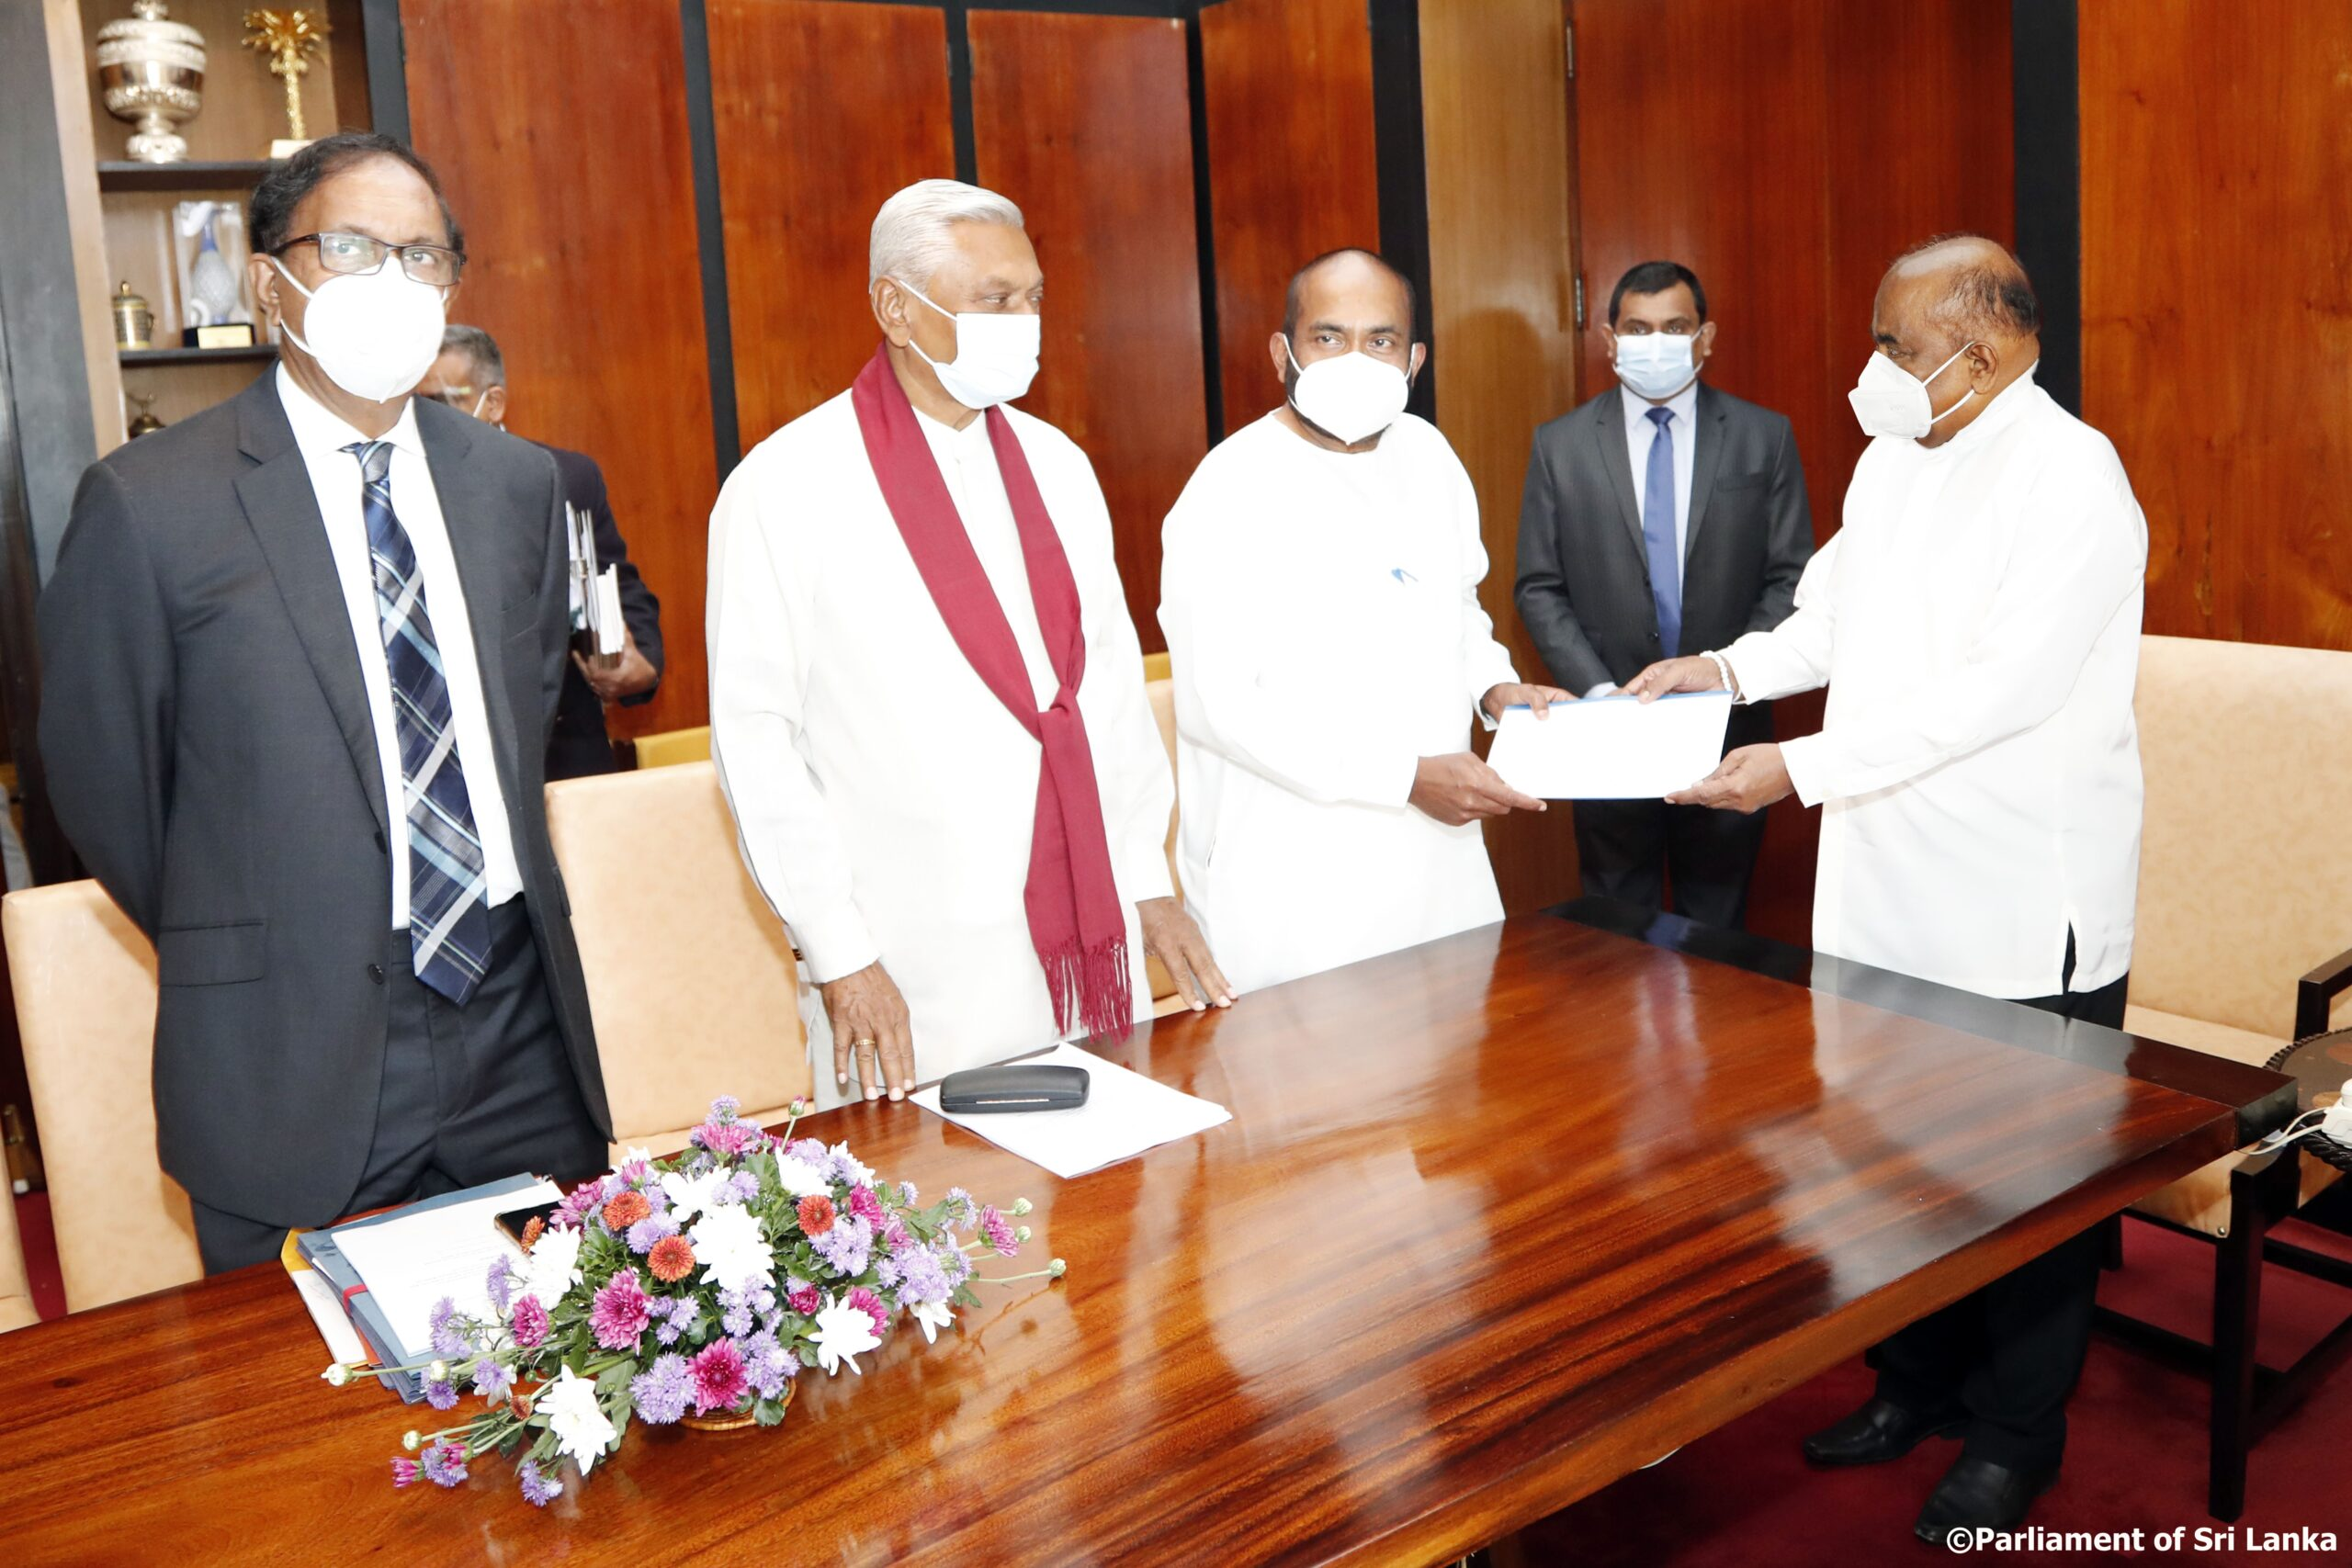 Committee report on the incidents that took place in Parliament on 2021 April 21 handed over to the Speaker